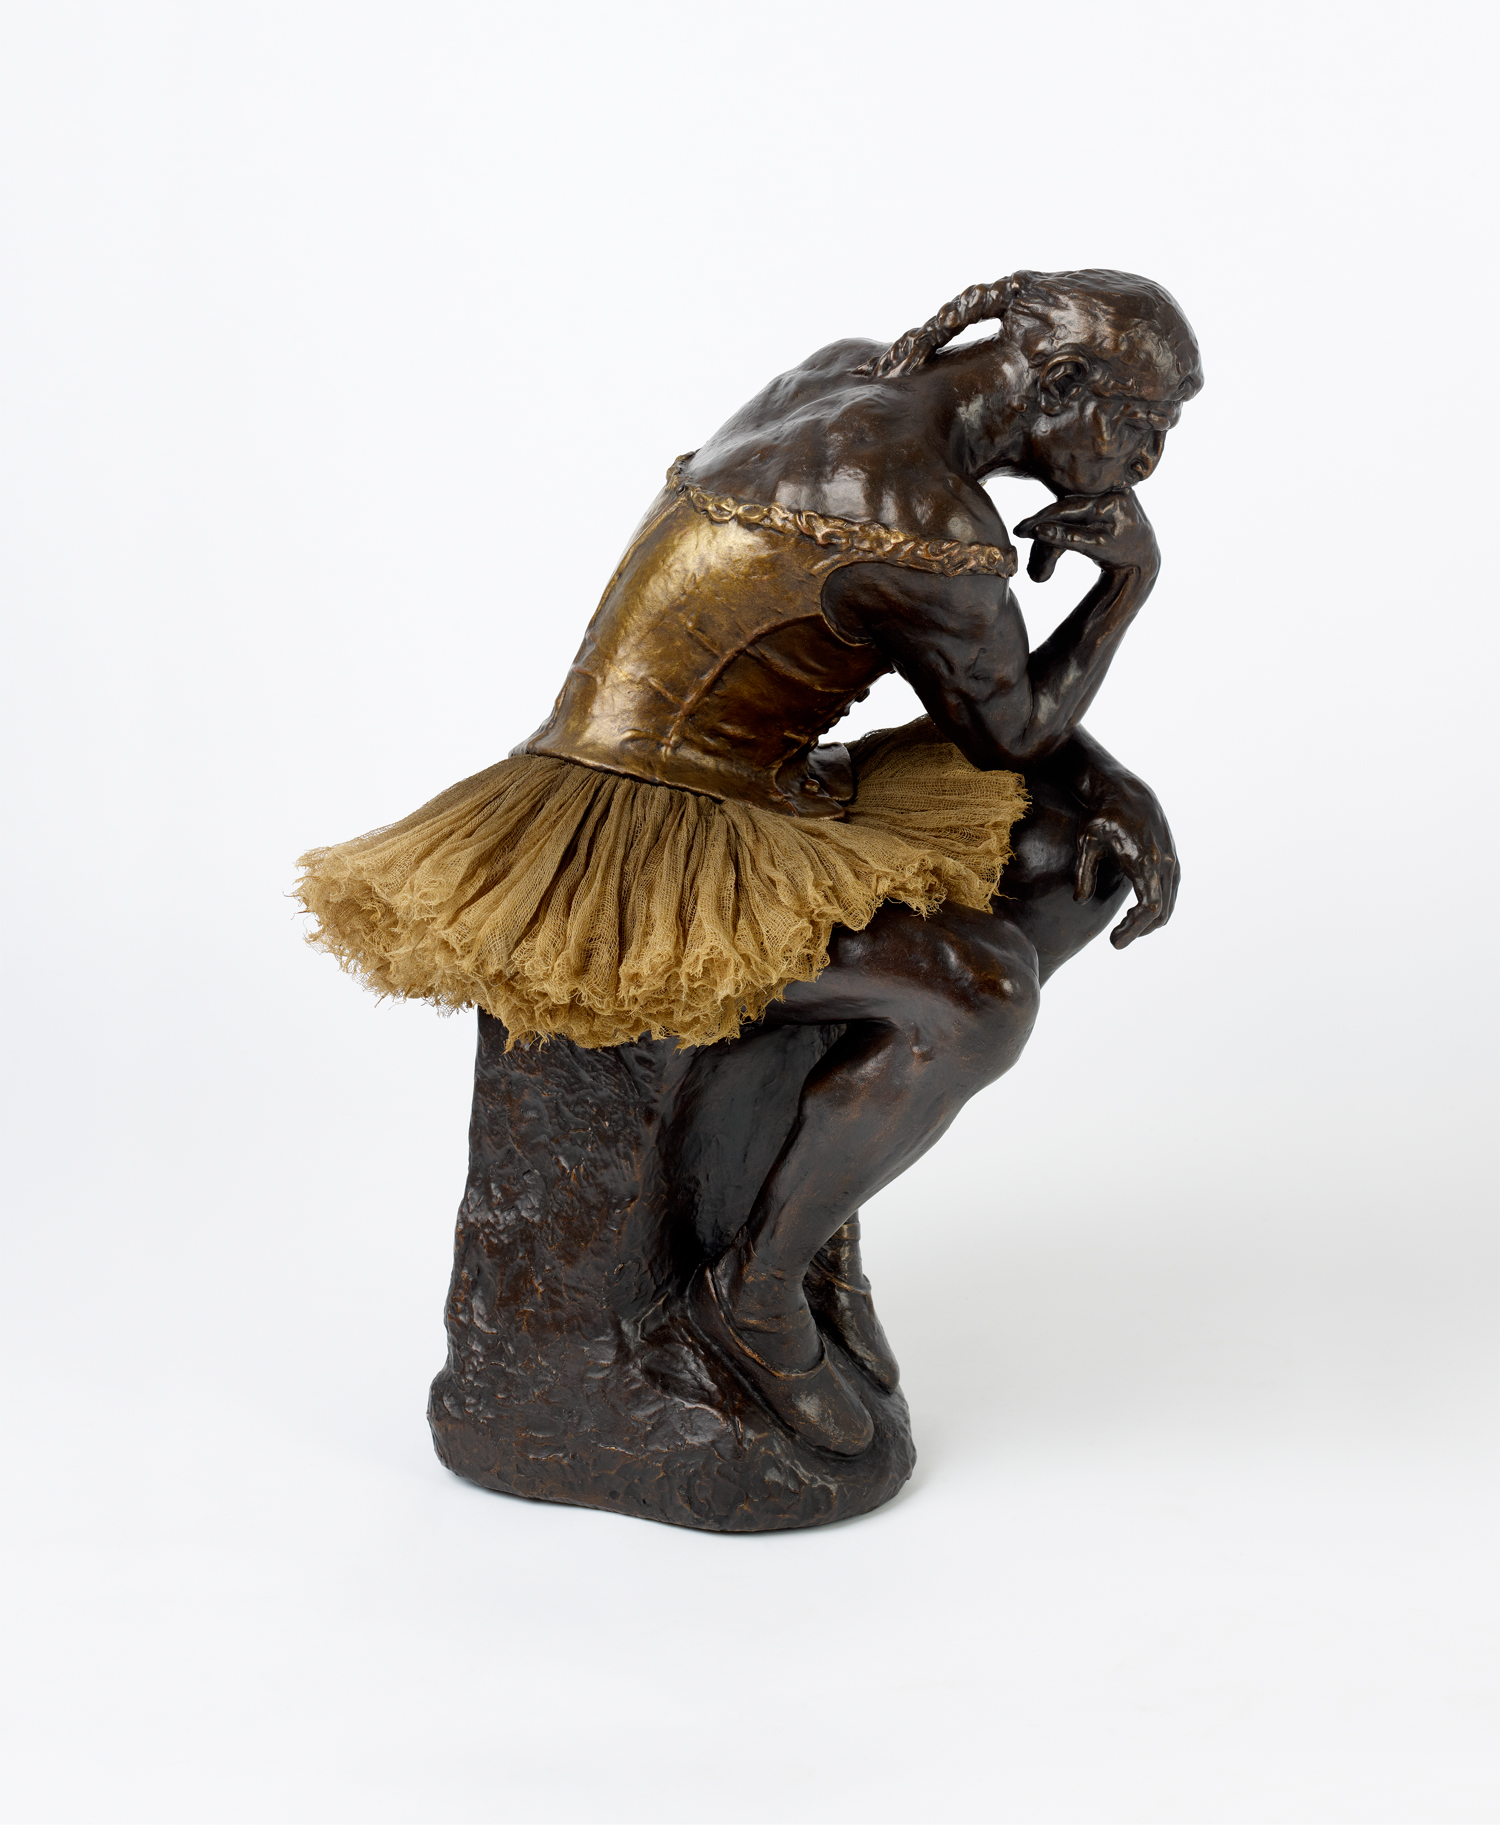 The Thinker (after Rodin/Degas)